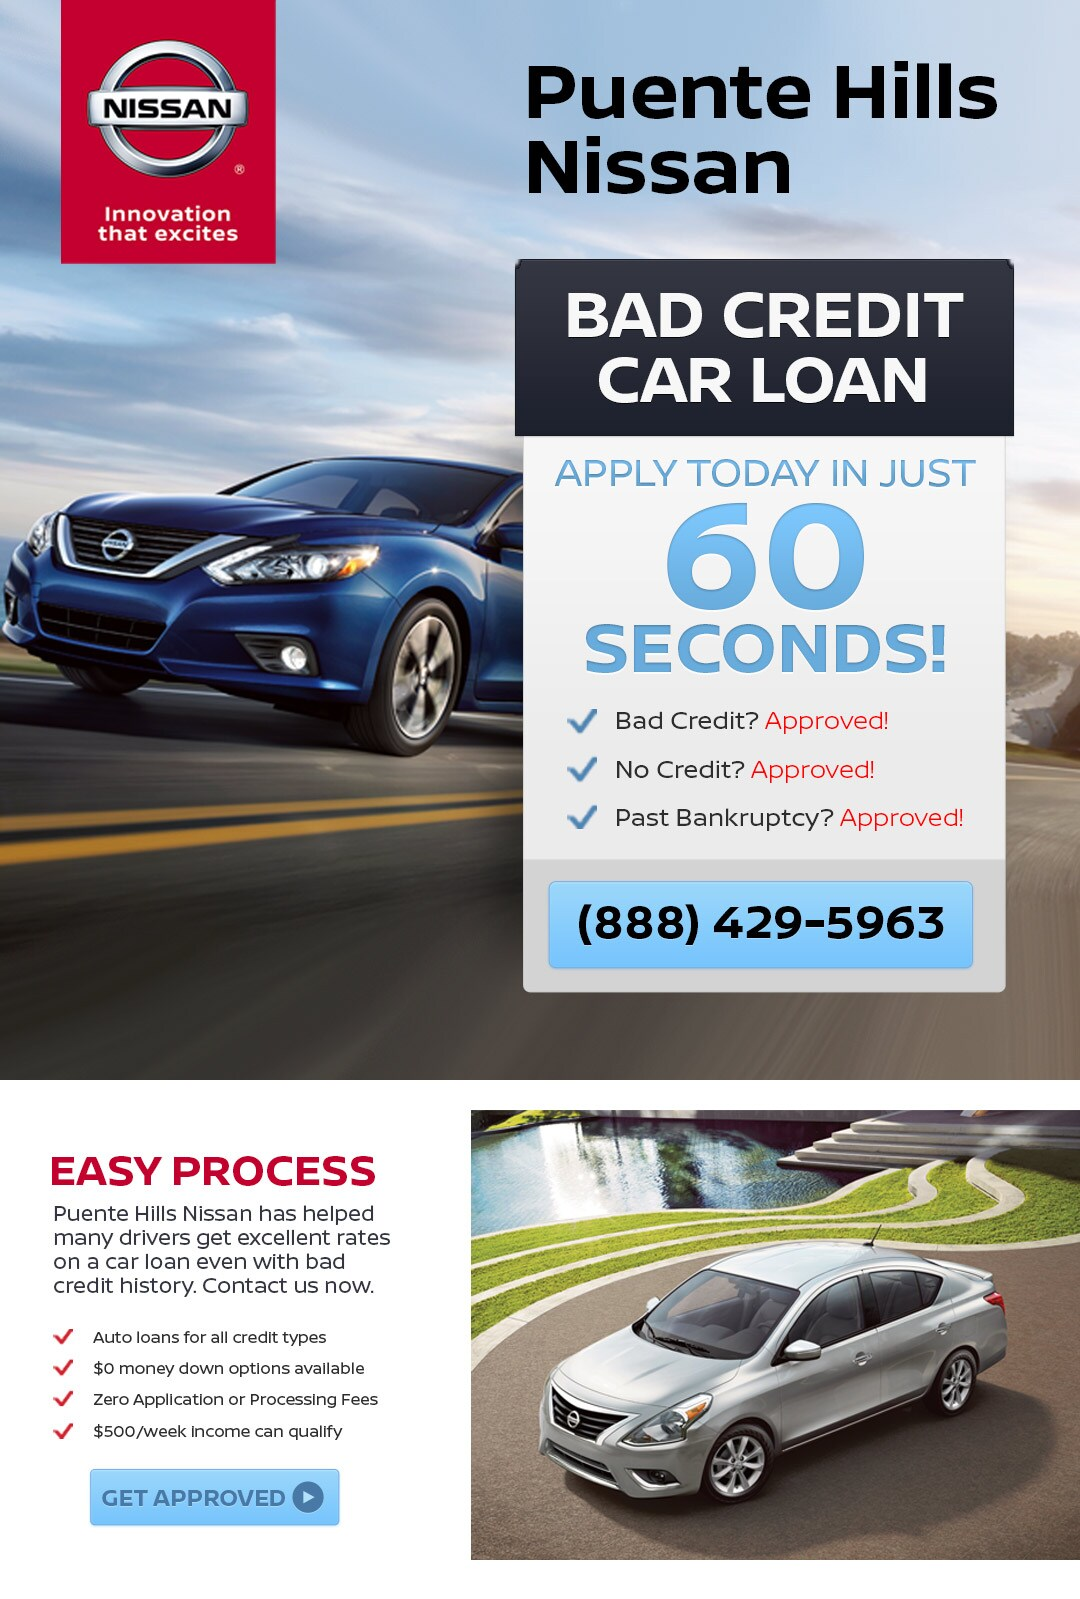 Bad Credit Car Loan Puente Hills Nissan